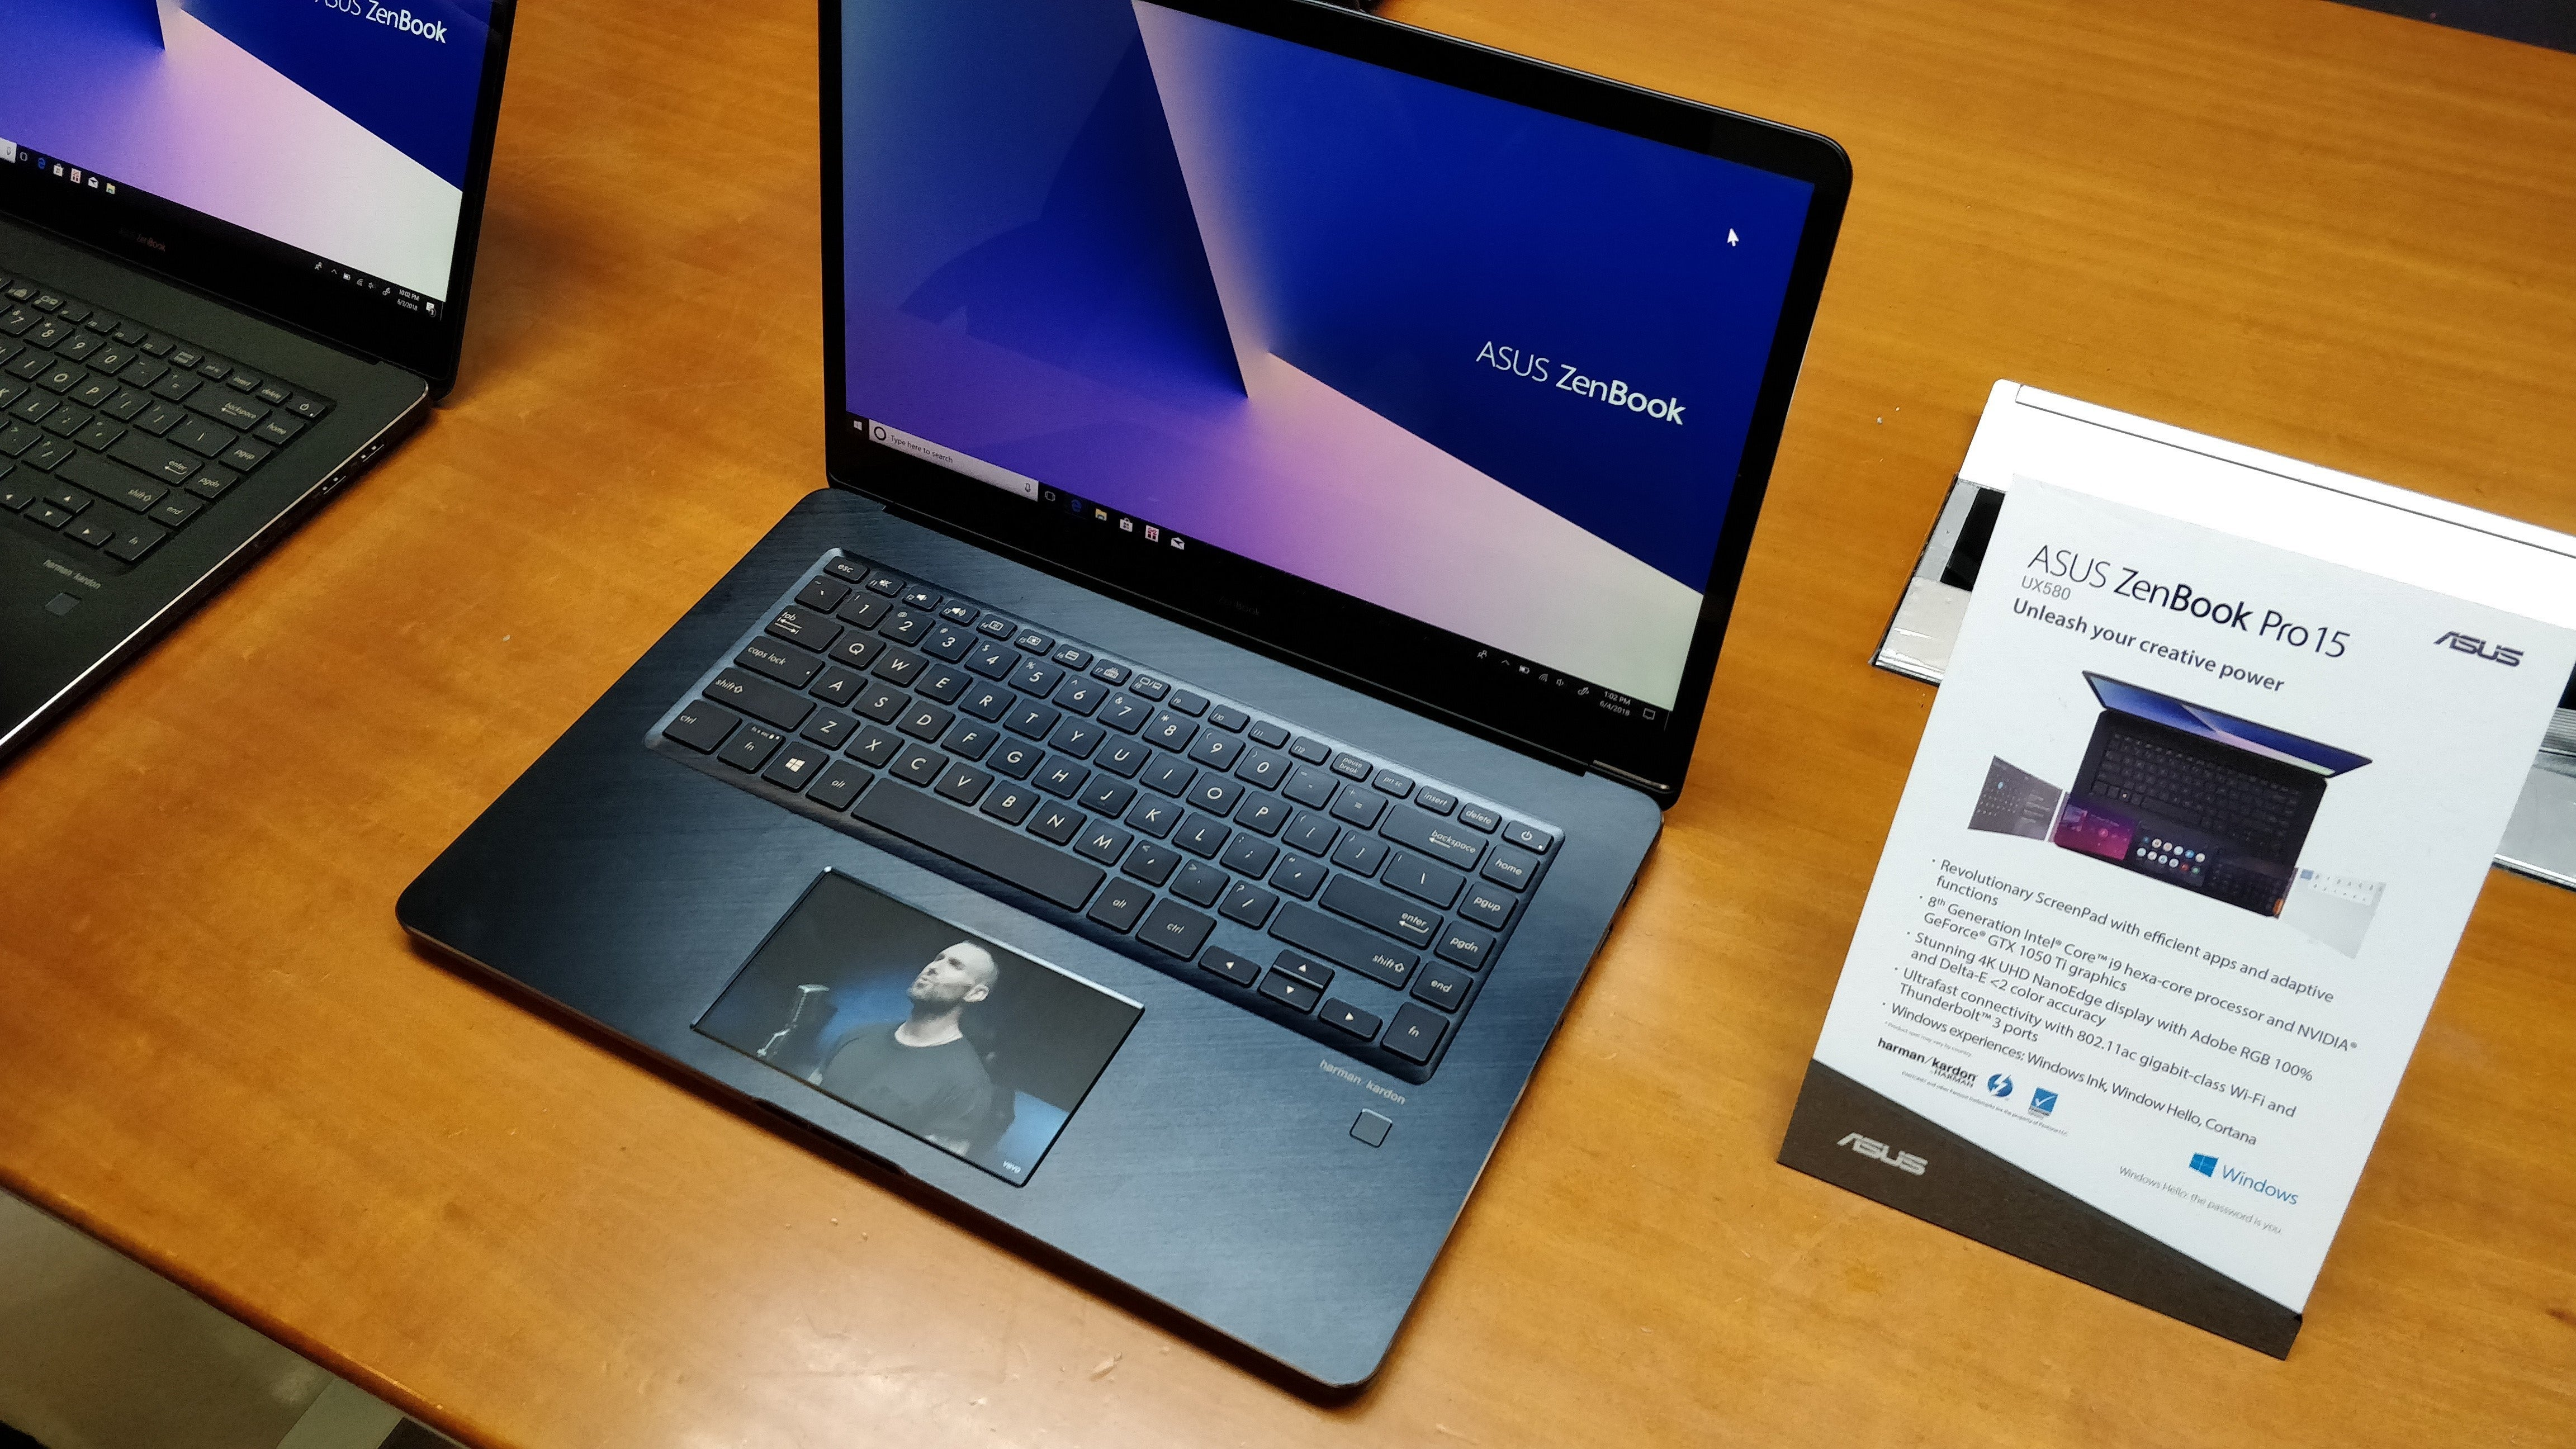 ASUS TOUCHPAD DRIVERS FOR WINDOWS 7